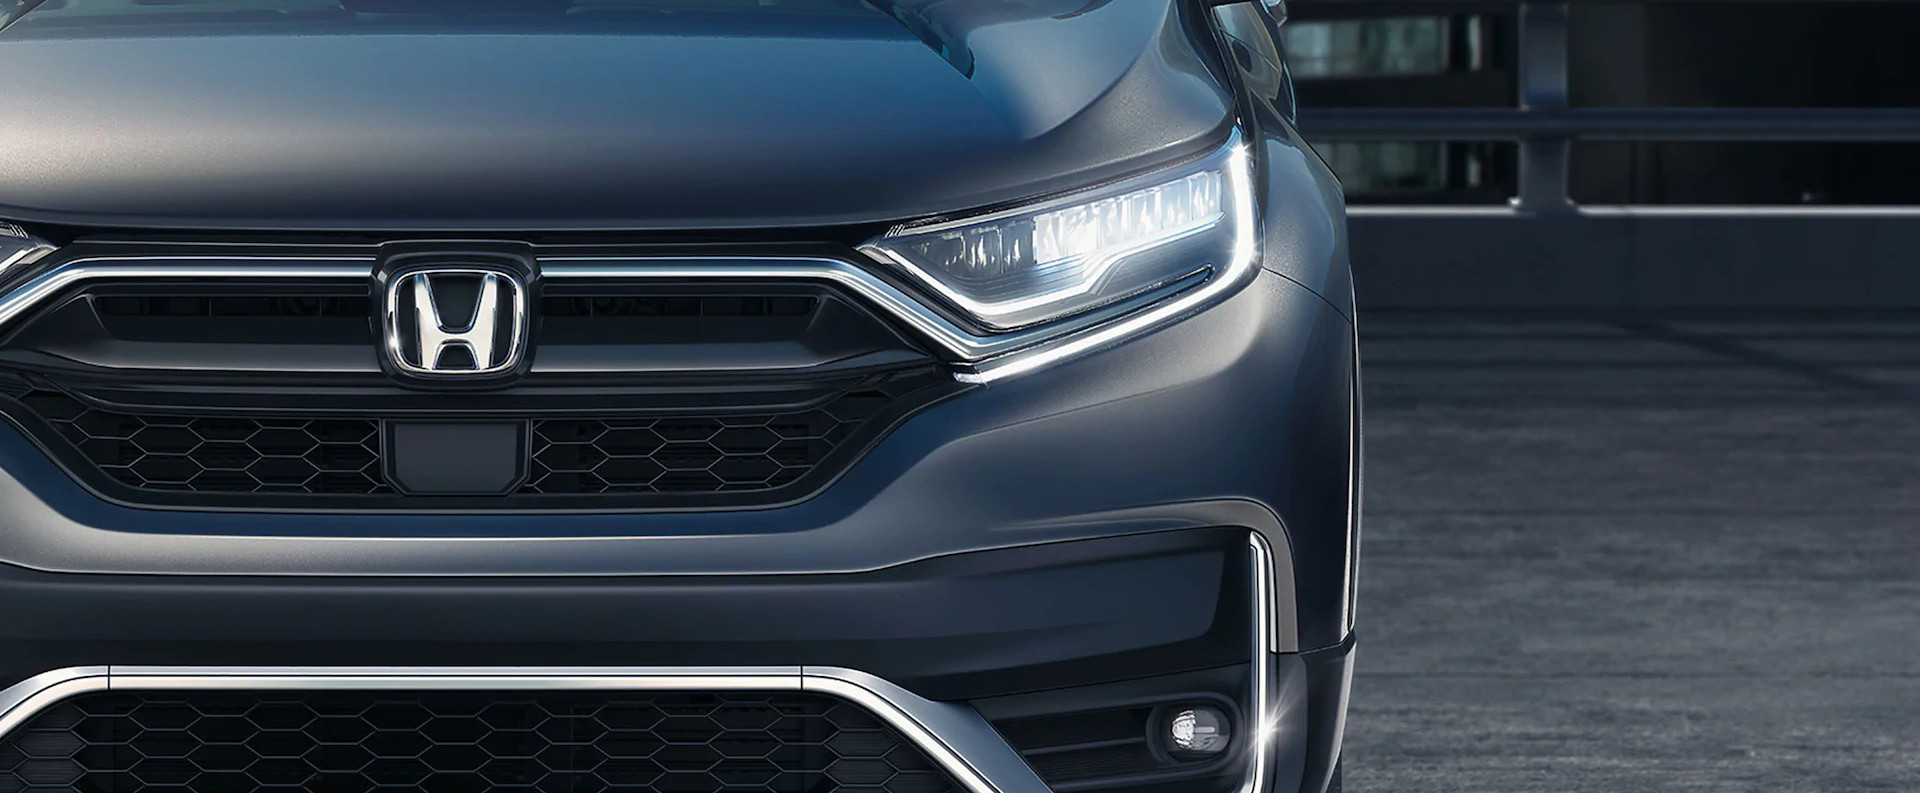 Front Fascia of the 2020 CR-V